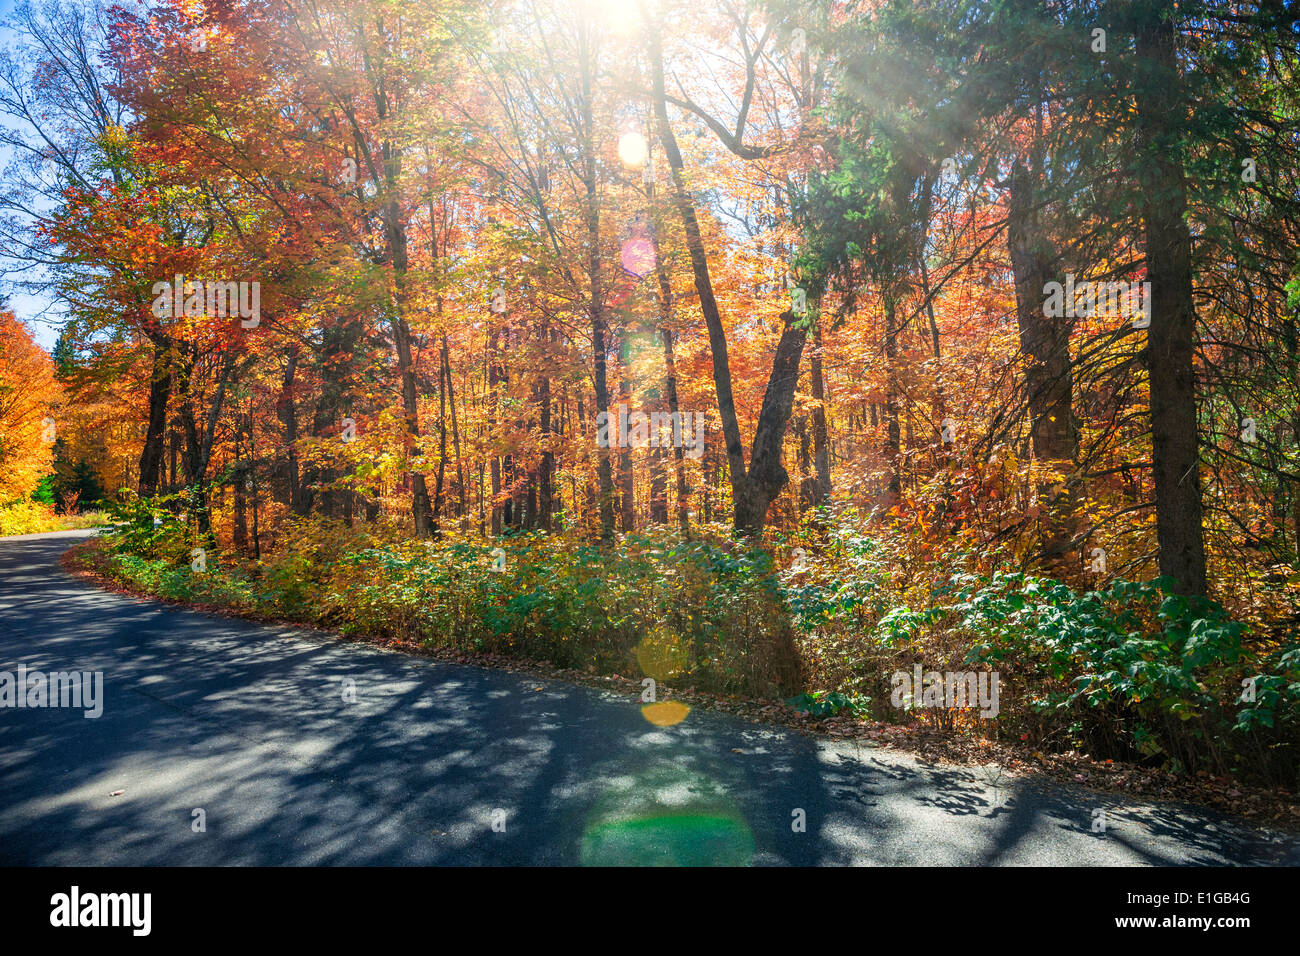 Sunflare in colorful fall forest with country road. Algonquin Provincial park, Ontario, Canada. - Stock Image